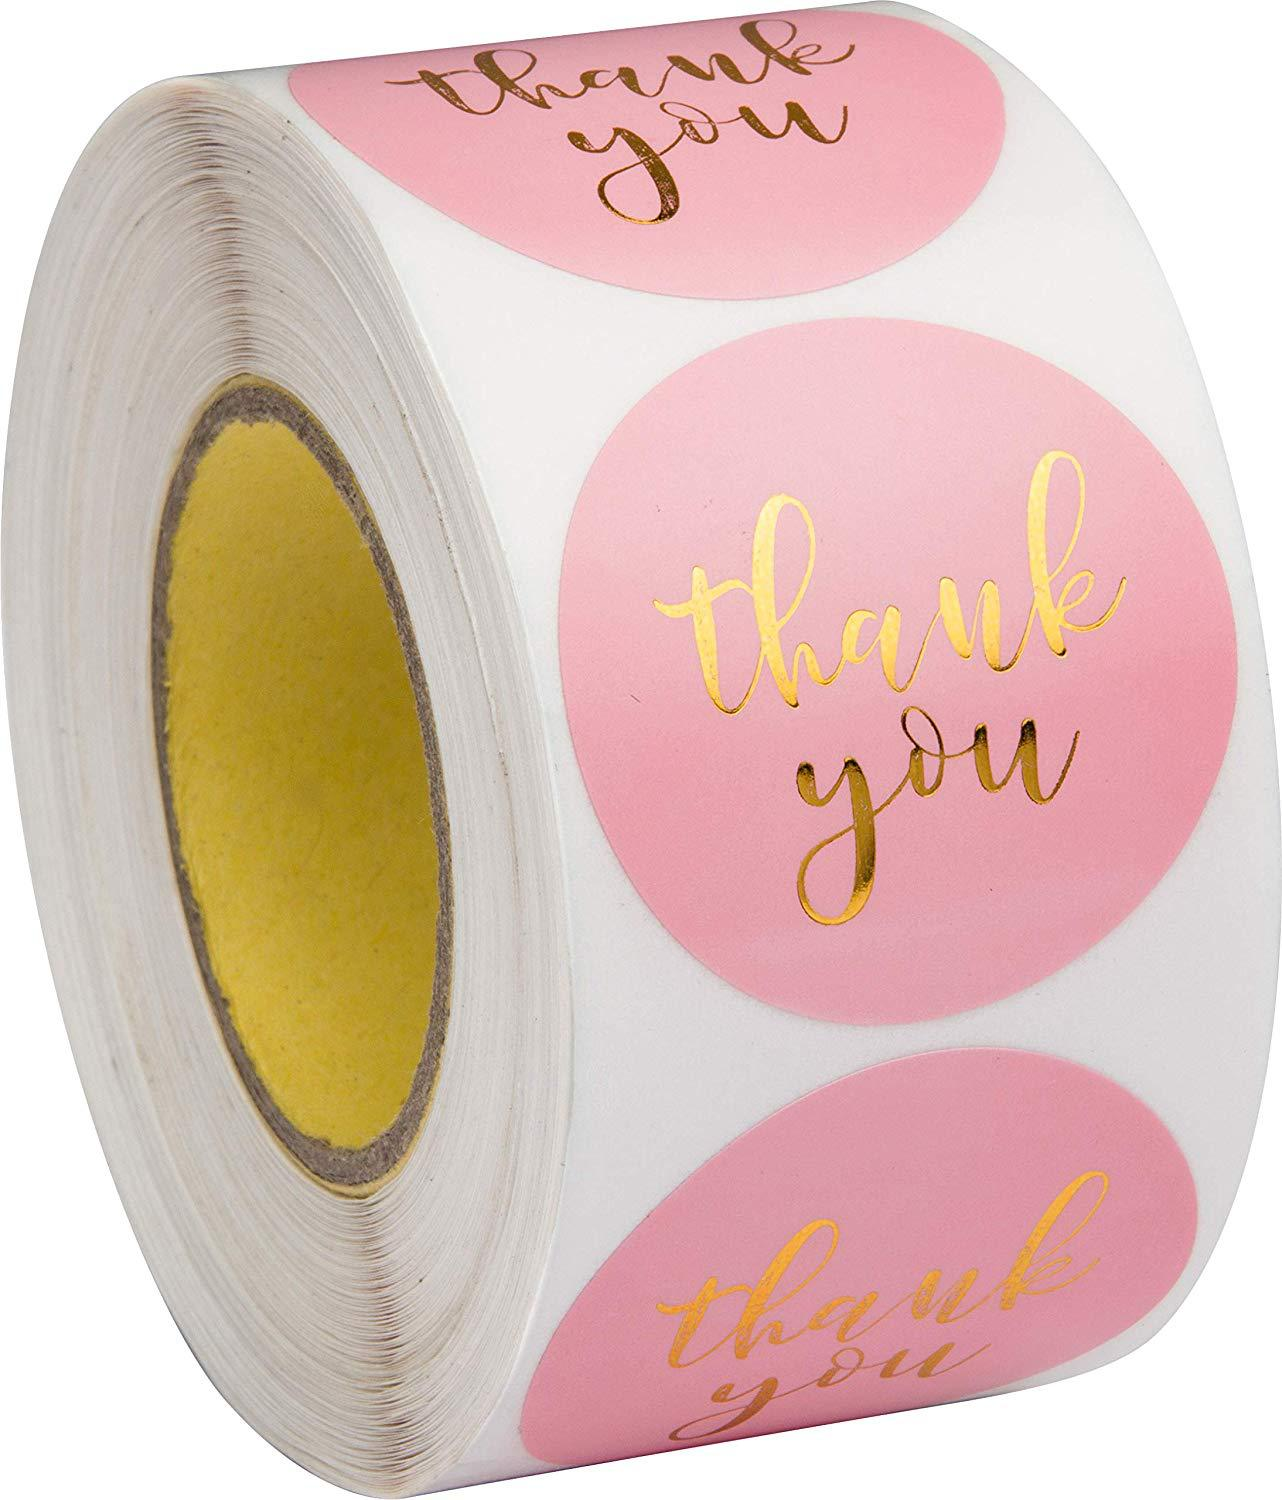 Gold Foil Pink Thank You Stickers  Scrapbooking 1inch 500pcs Wedding Stickers Party Favors Envelope Labels, Stationery Stickers